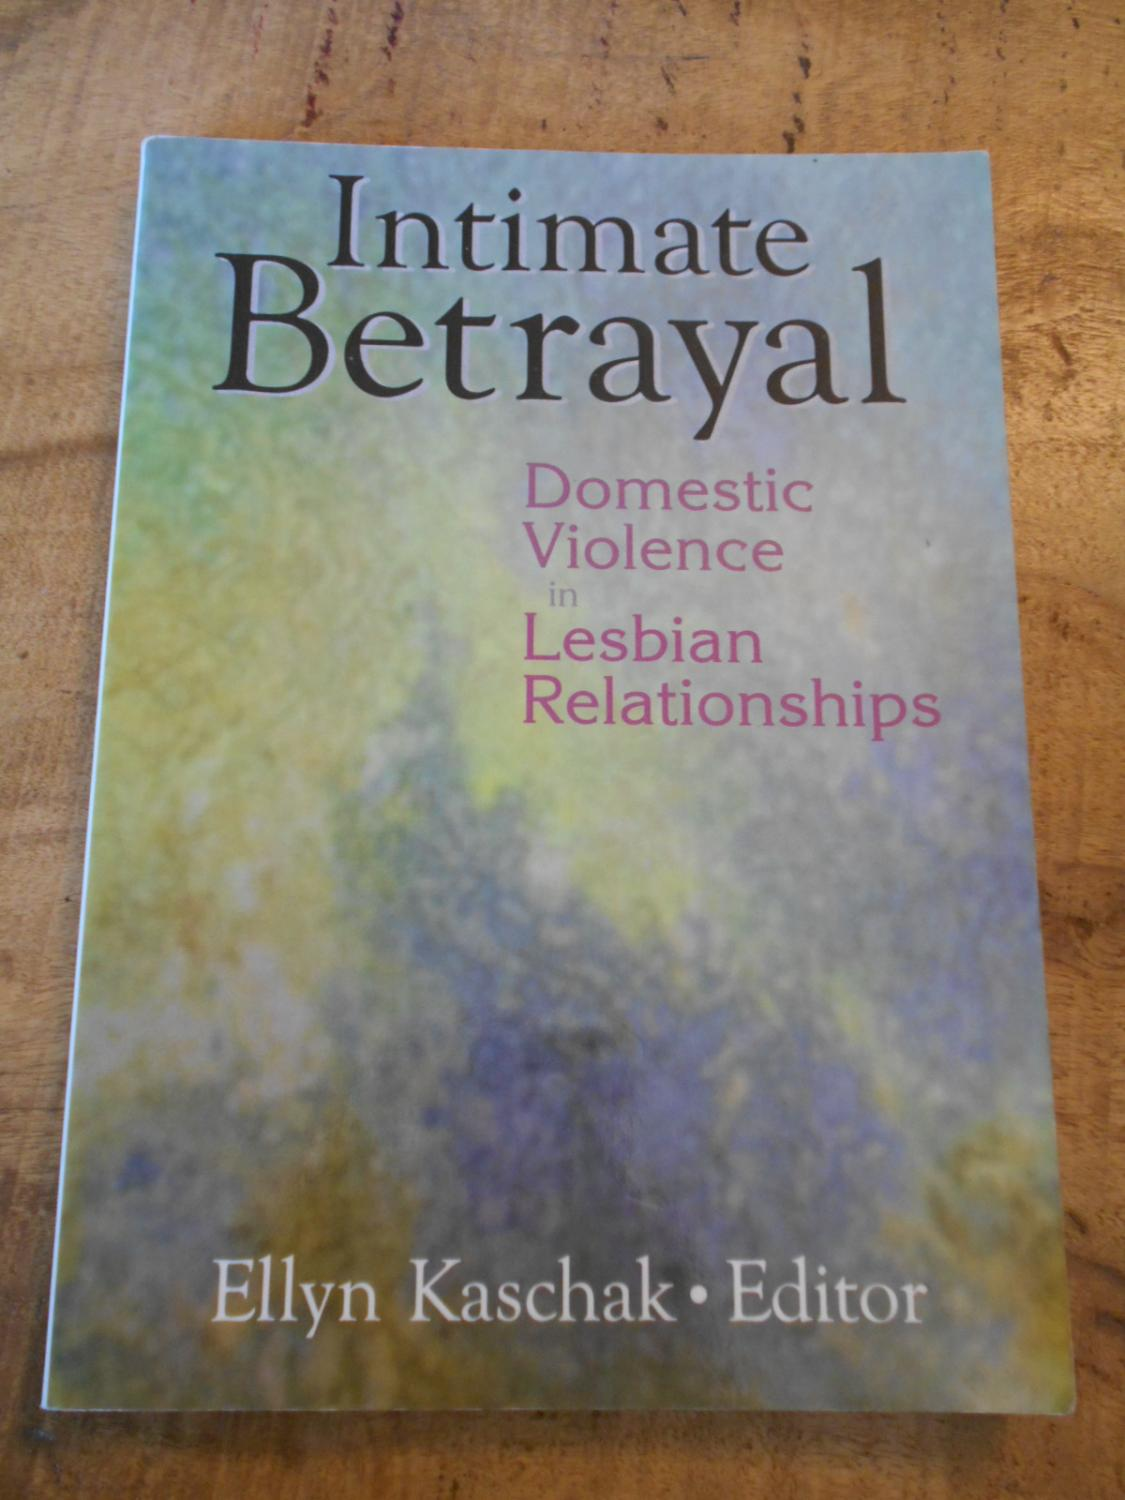 a survey of instances of domestic violence in lesbian relationships Tic violence in lgbt relationships may as an lgbt victim of domestic violence violence the same as heterosexual instances,5 creating a gay and lesbian unit.